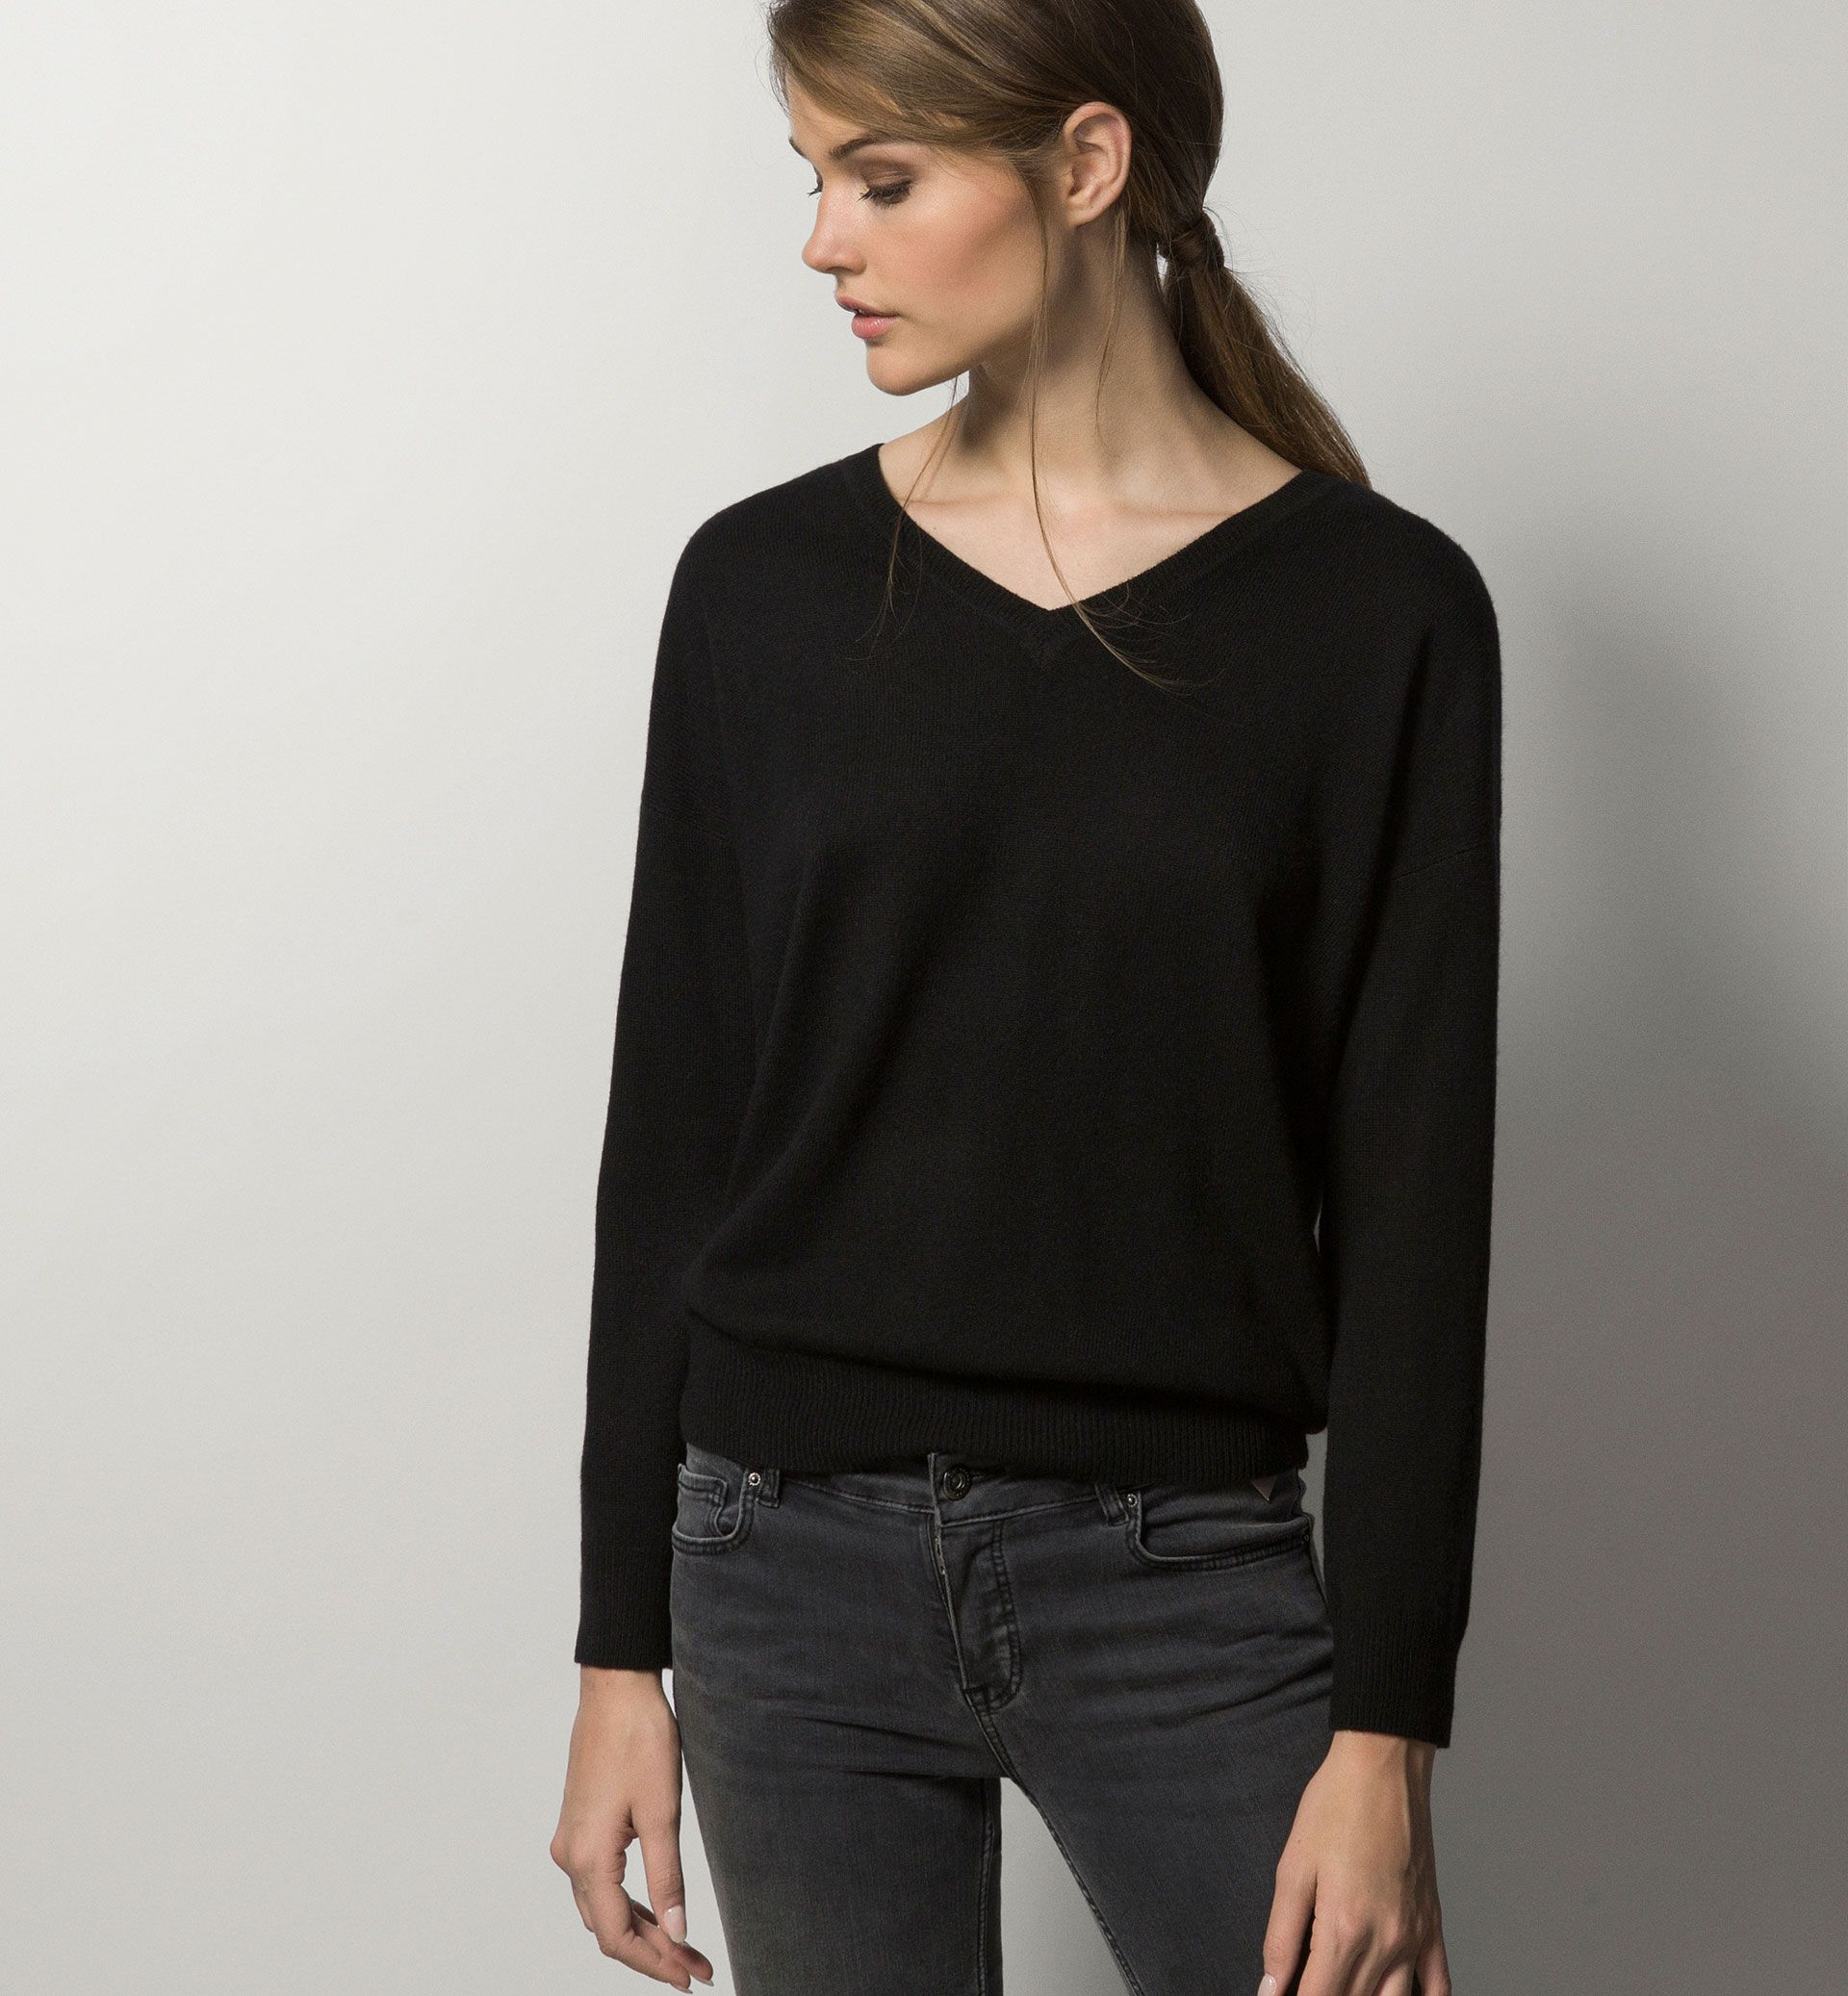 100% CASHMERE V-NECK SWEATER - Business selection - Knitwear ...